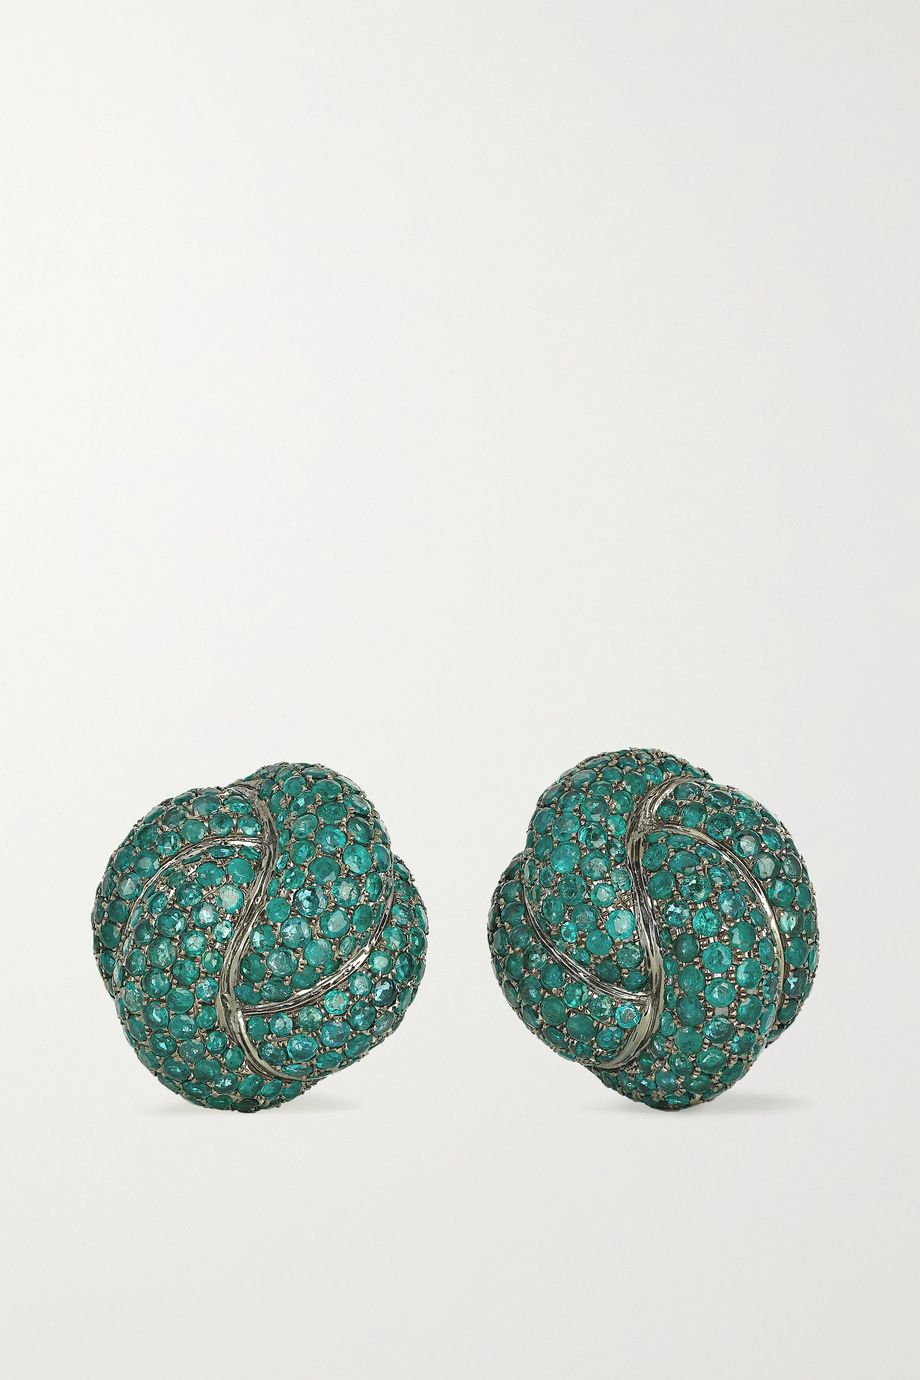 Lorraine Schwartz 18-karat blackened white gold emerald clip earrings